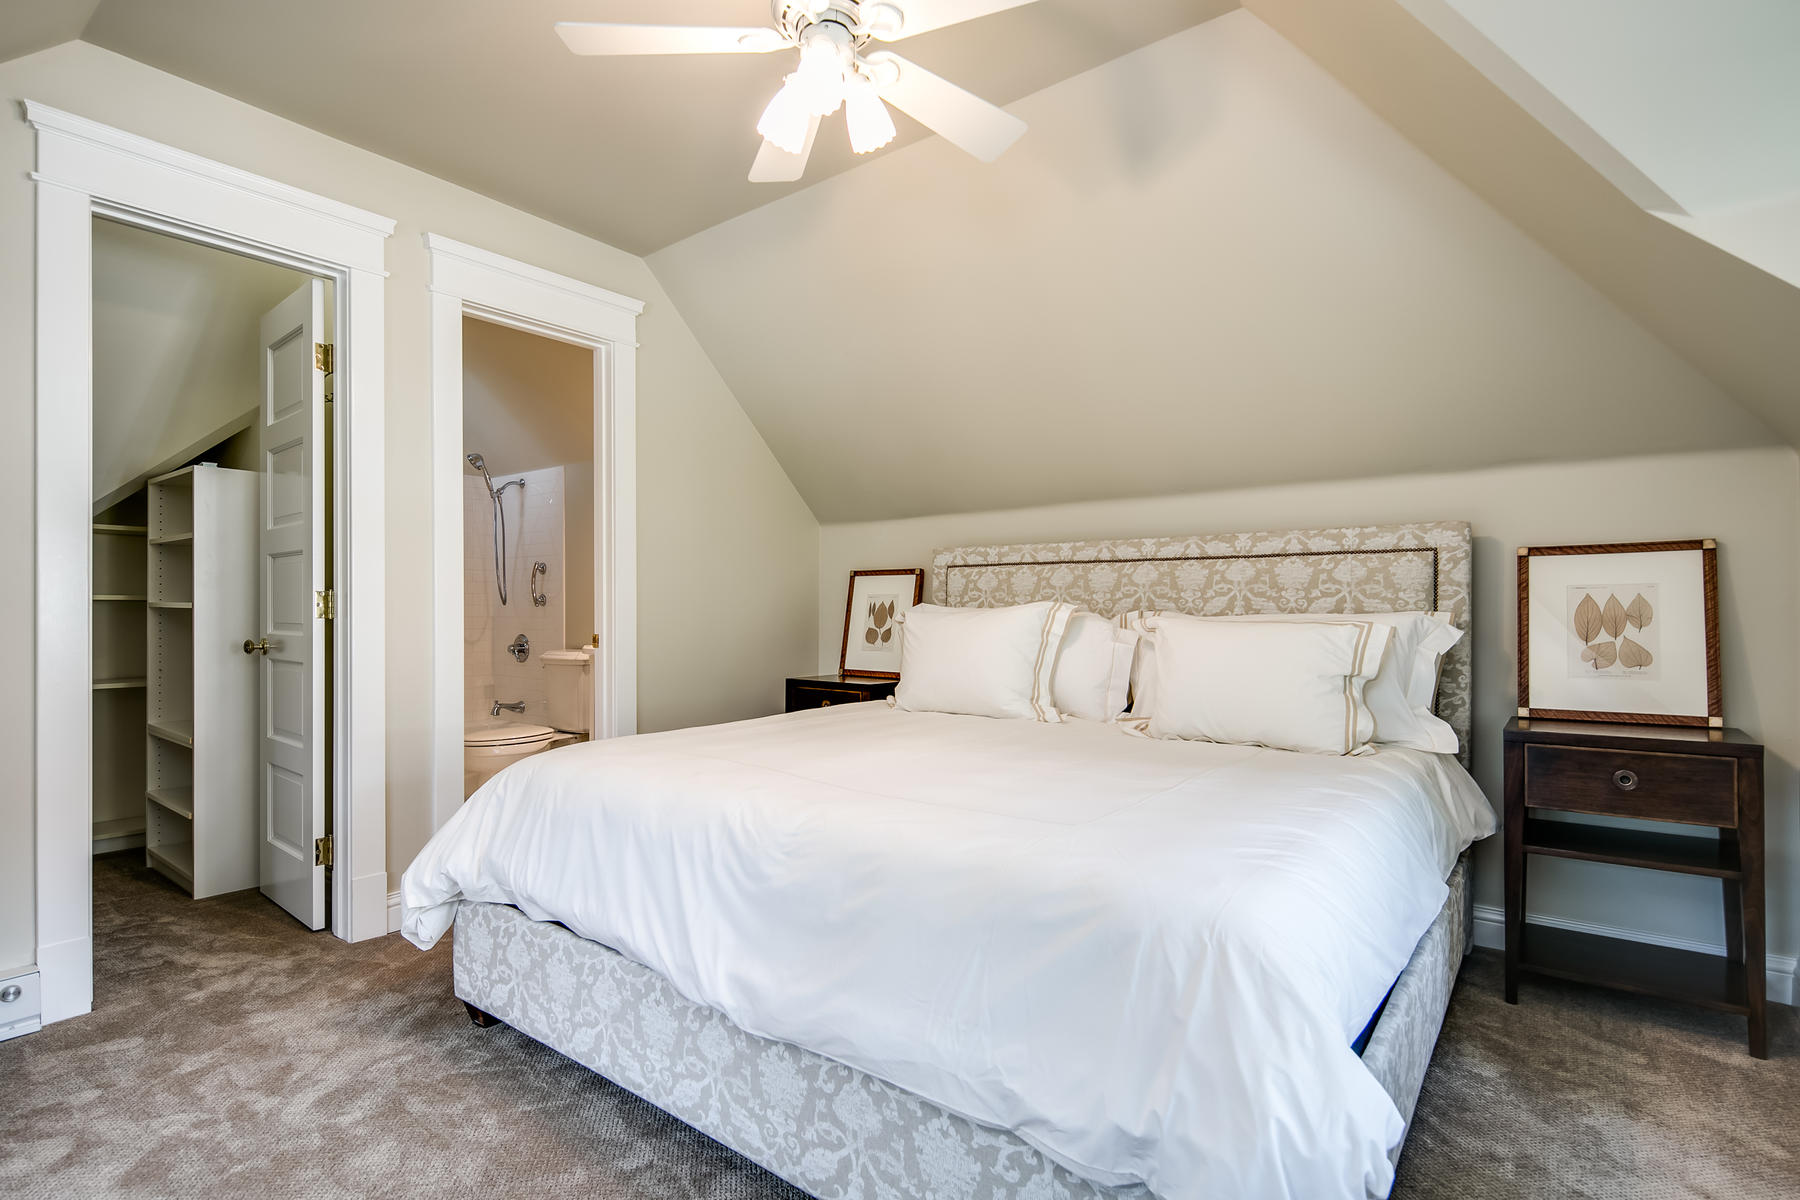 Additional photo for property listing at How Wonderful Would It Be To Live Here?! 1700 East 3rd Avenue Denver, Colorado 80218 United States